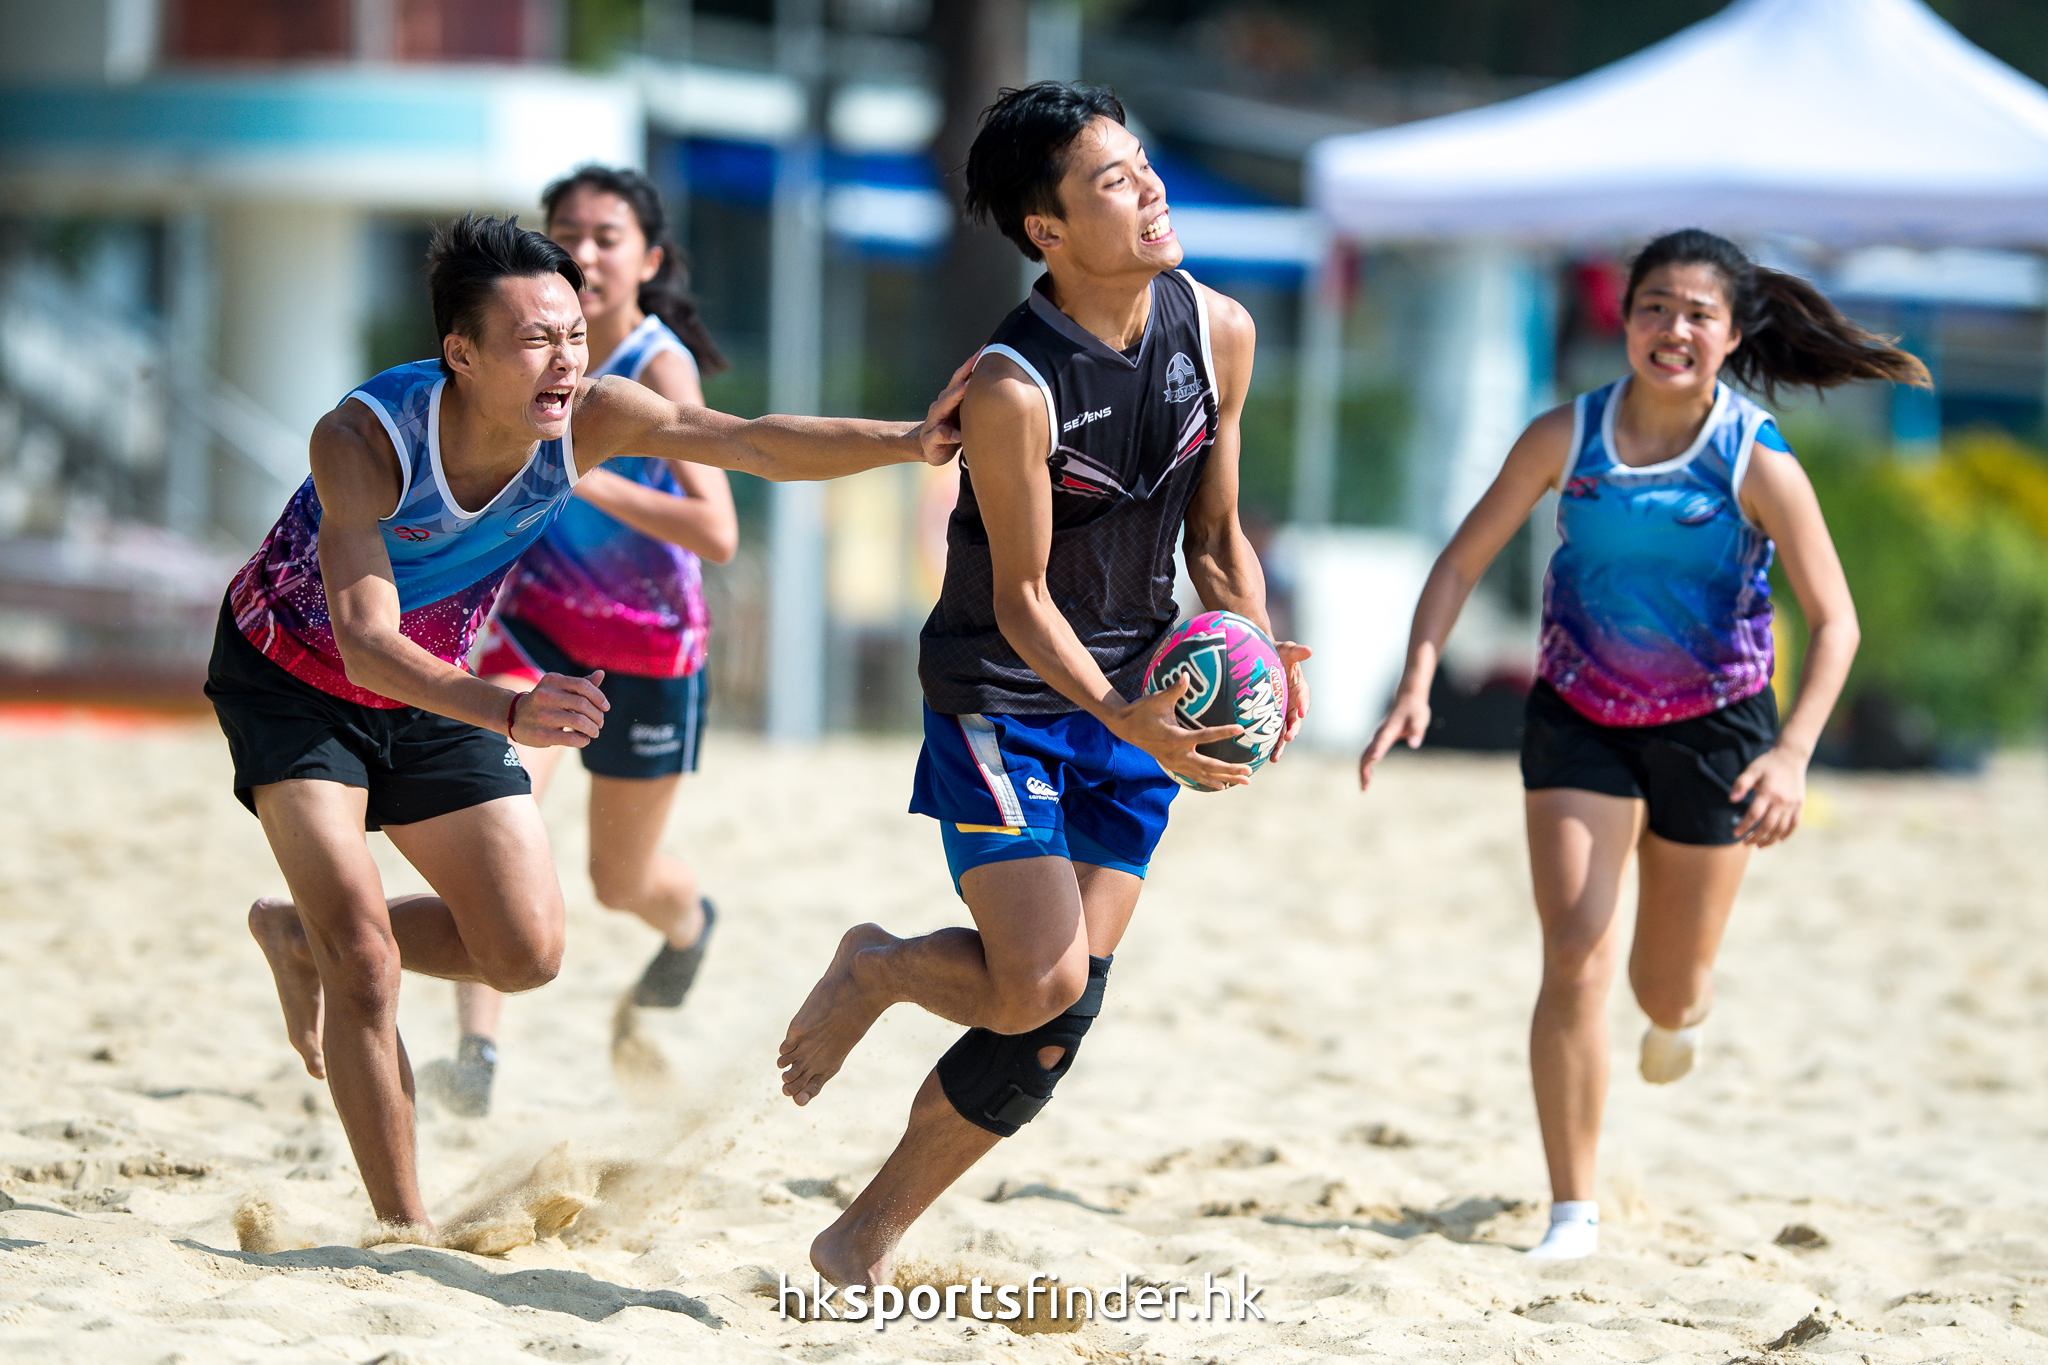 Her_GoldCoastTertiaryBeachRugby_16-11-12 13.41.19_001050.jpg